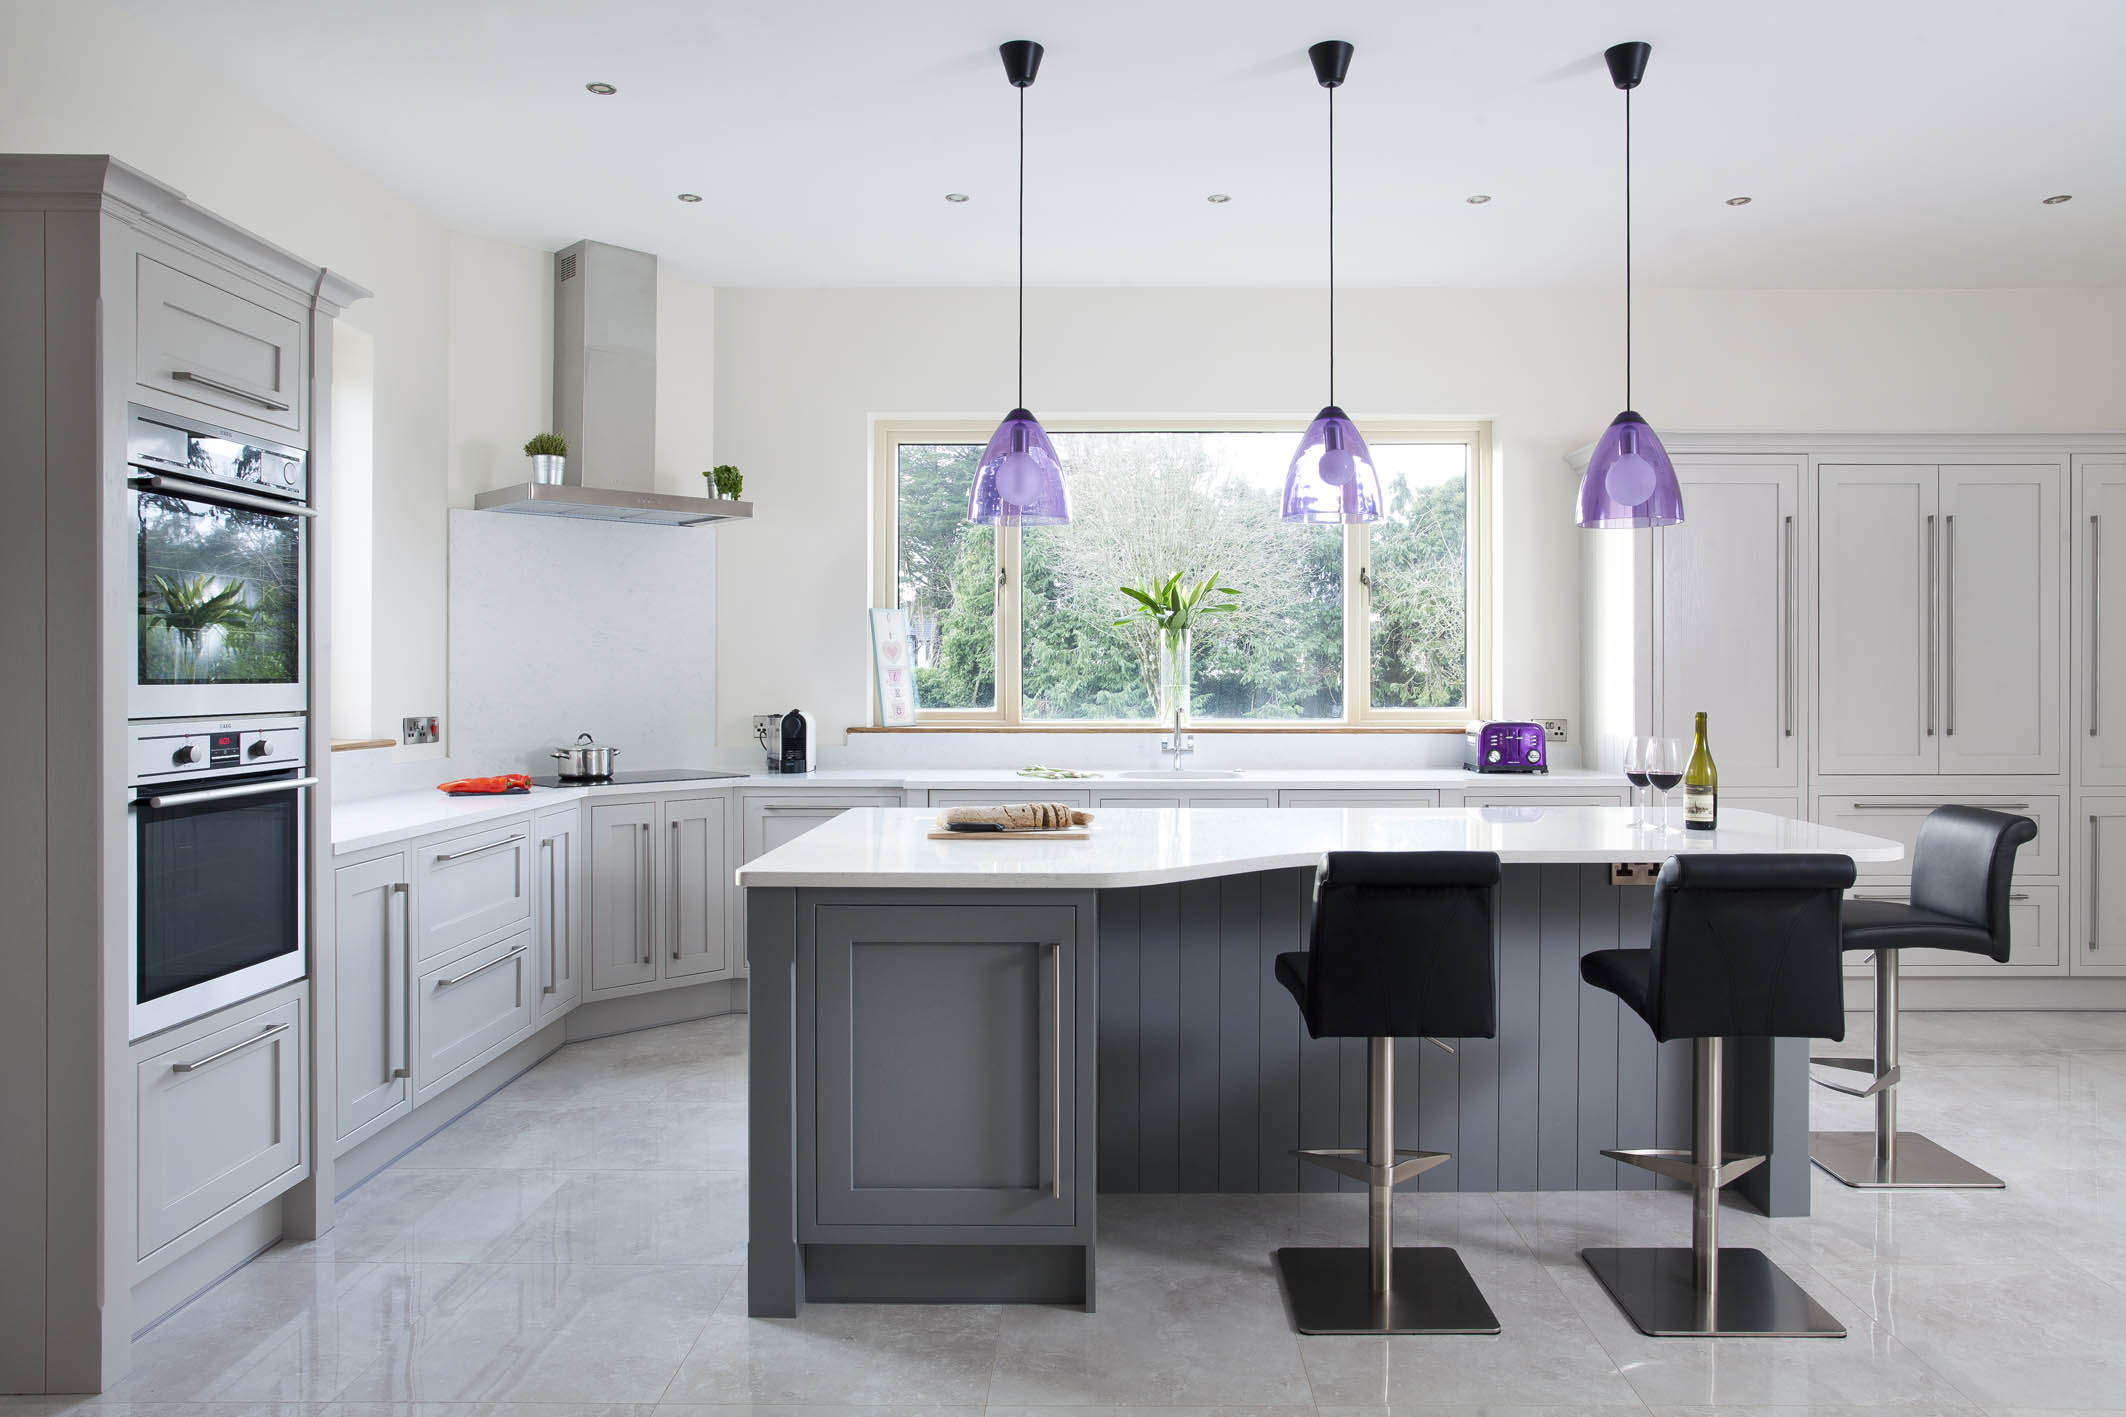 electrolux kitchen appliances island light fixtures classic contemporary handmade kitchen, tipperary, painted ...